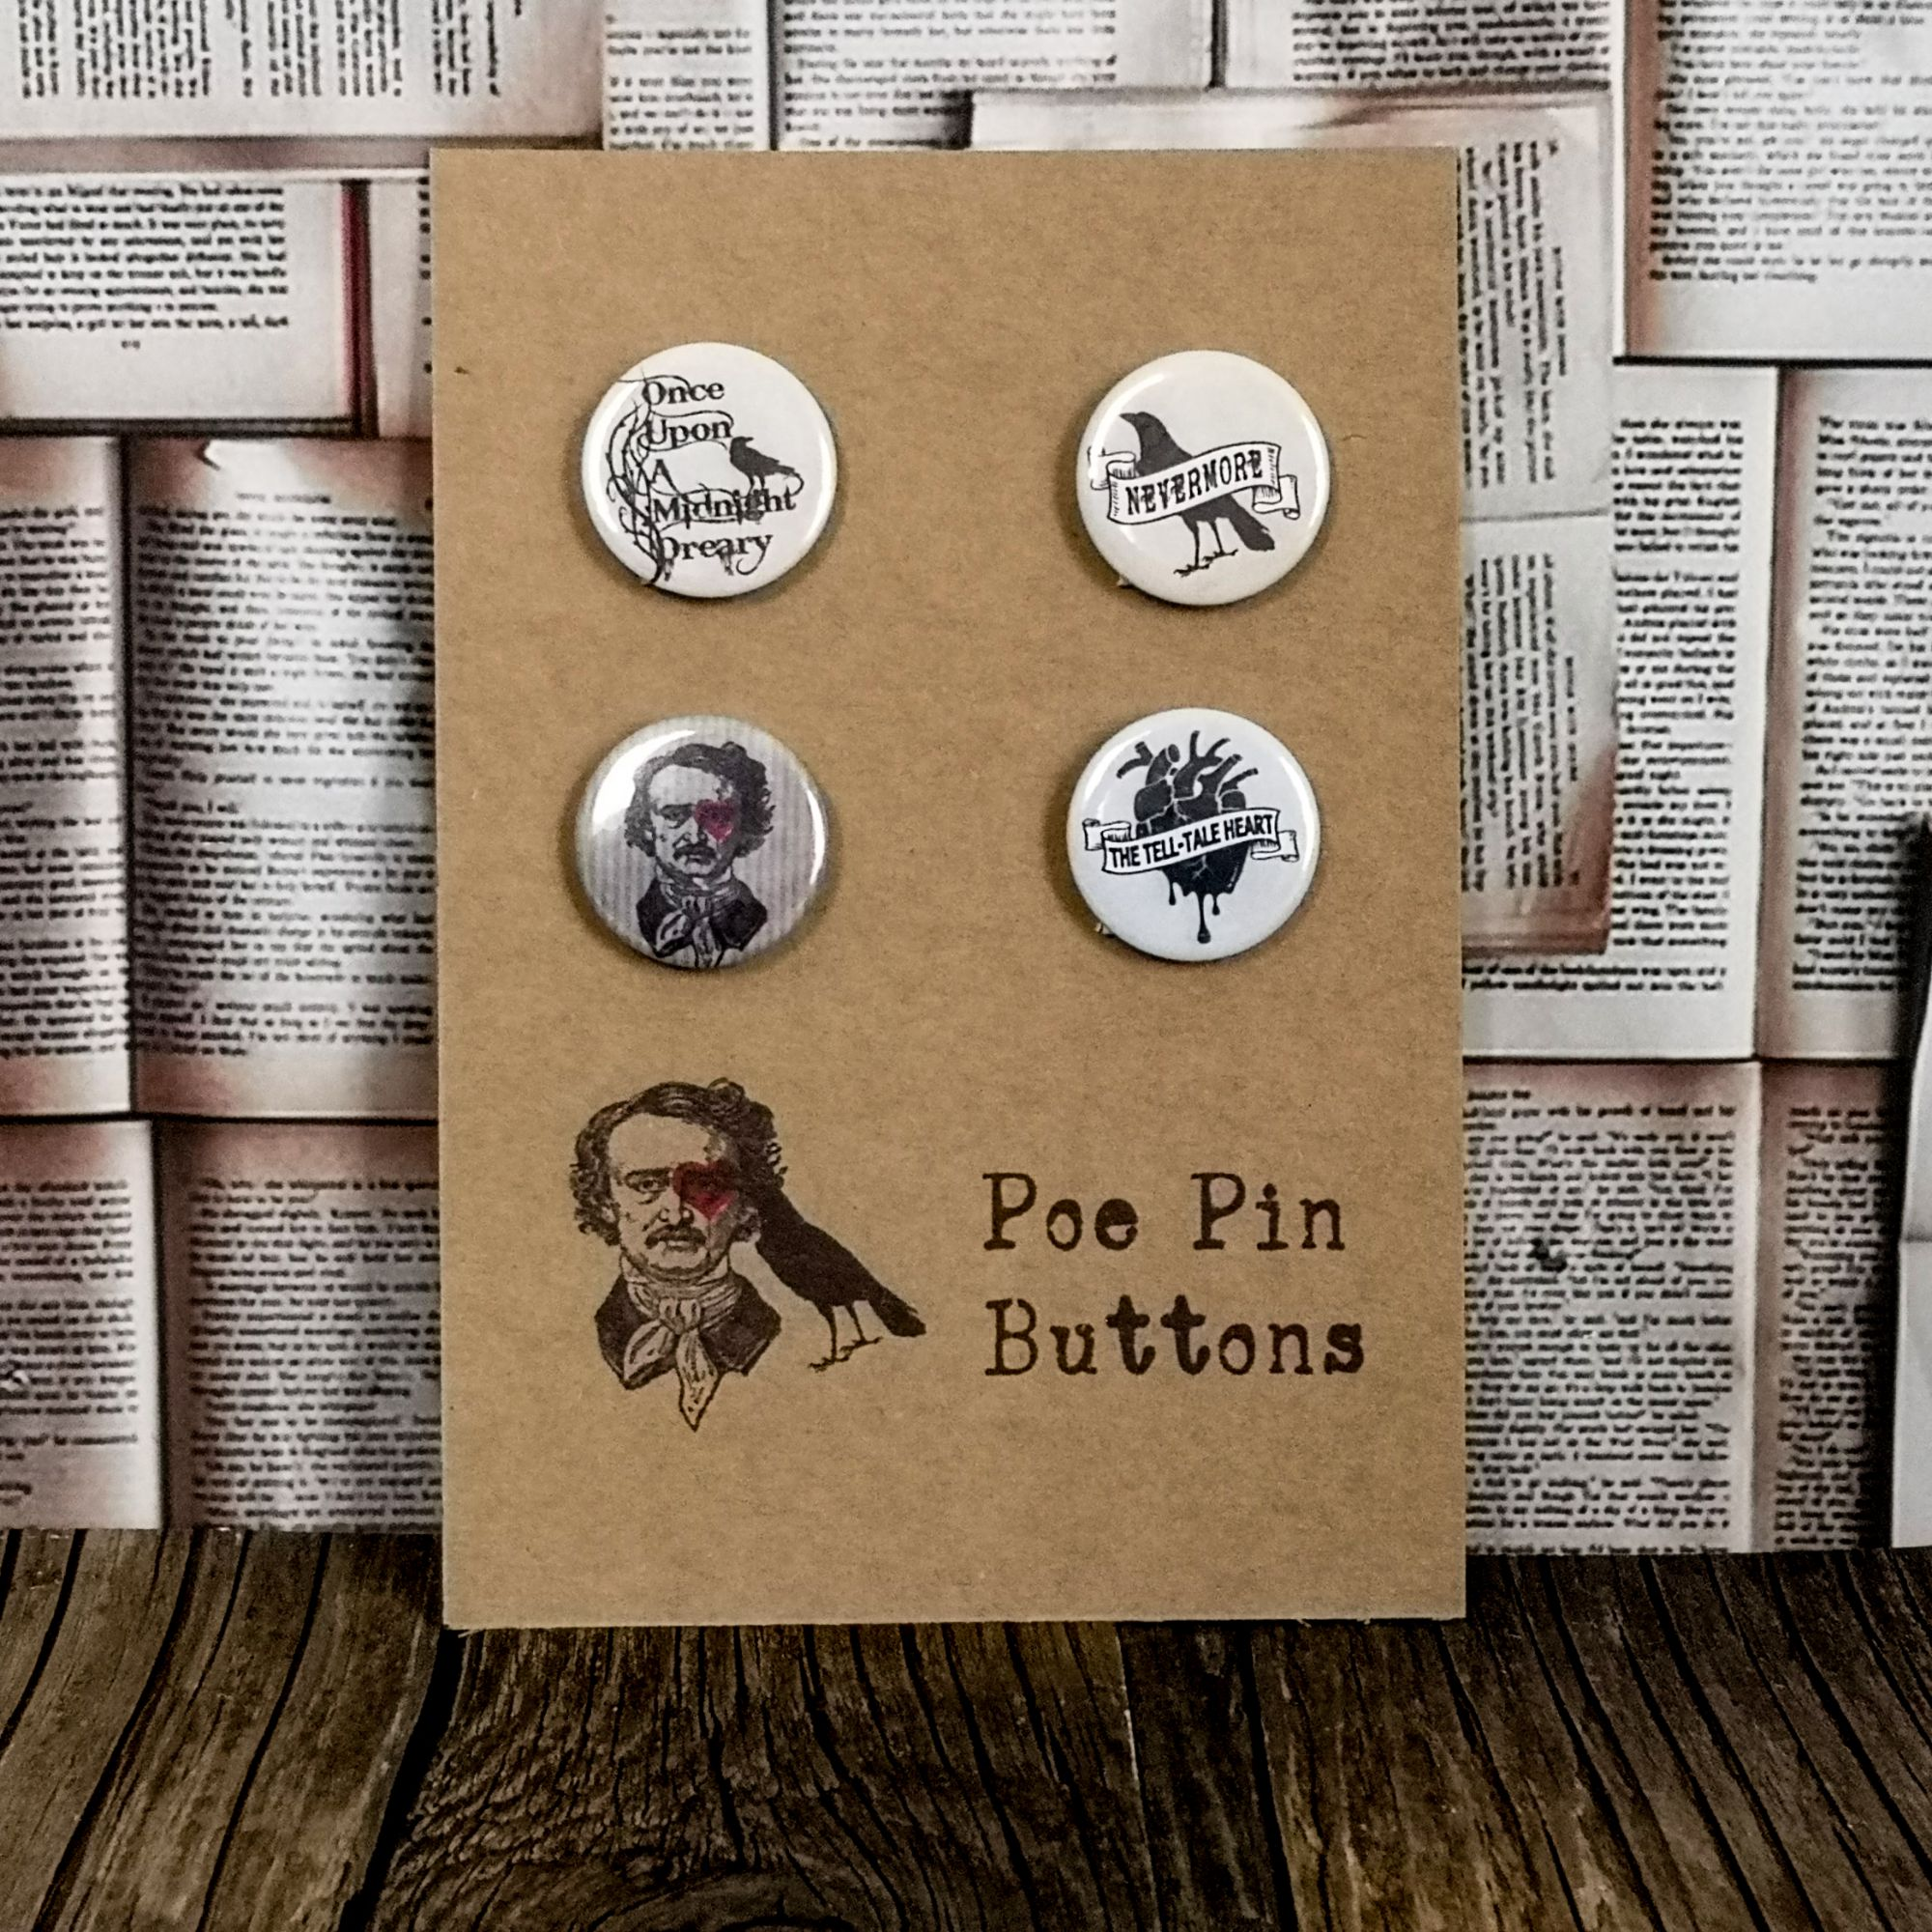 Poe pin buttons